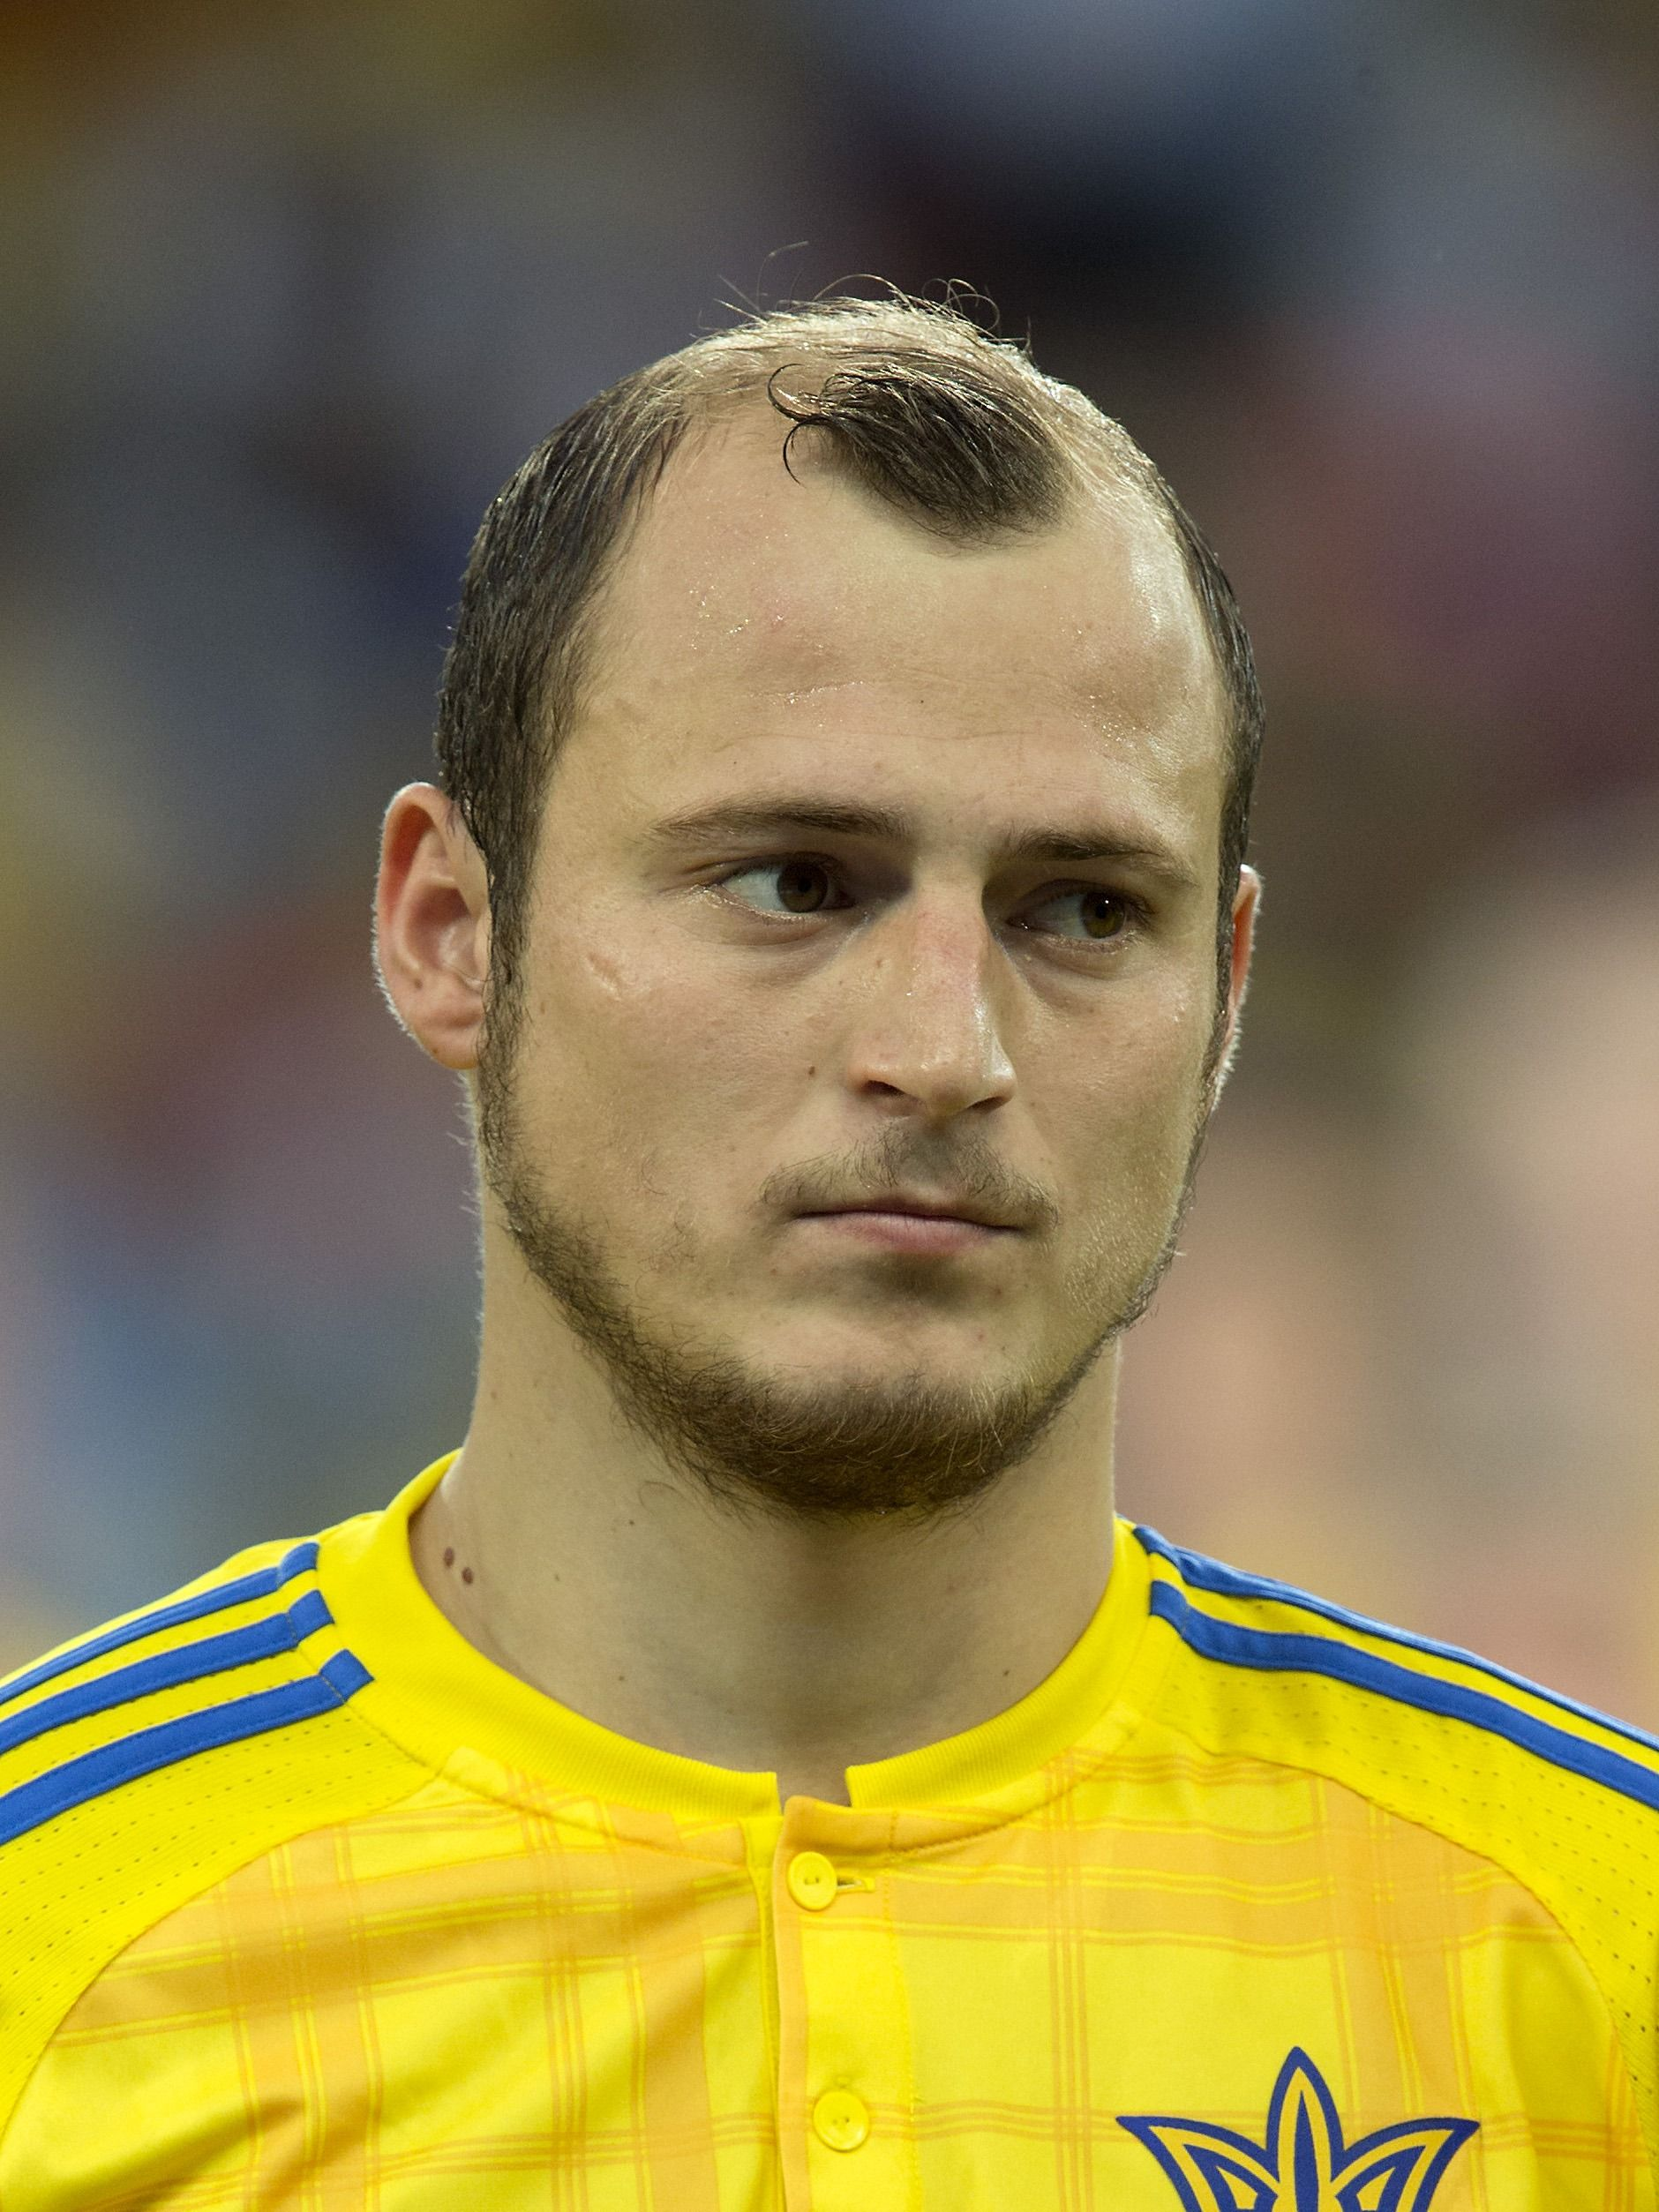 The 10 Worst Haircuts Of Euro 2016